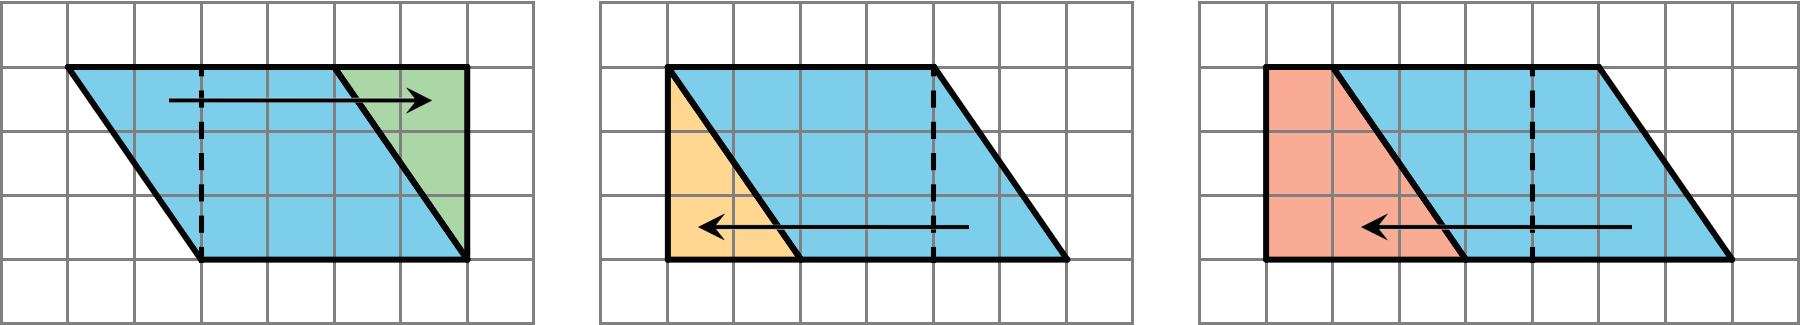 Three identical parallelograms with horizontal sides that are four units long, drawn in grids. The first parallelogram has a perpendicular segment extending from 2 units in from the top left down to the vertex of the bottom horizontal side. An arrow extends from the resulting triangle to the opposite side of the parallelogram to create a rectangle measuring 4 units wide and 3 units high. The second parallelogram has a perpendicular segment extending from 2 units in from the bottom right up to the vertex of the top horizontal side. An arrow extends from the resulting triangle to the opposite side of the parallelogram to create a rectangle measuring 4 units wide and 3 units high. The third parallelogram has a perpendicular segment extending from 3 units in from the bottom right up to the vertex of the top horizontal side. An arrow extends from the resulting shape to the opposite side of the parallelogram to create a rectangle measuring 4 units wide and 3 units high.